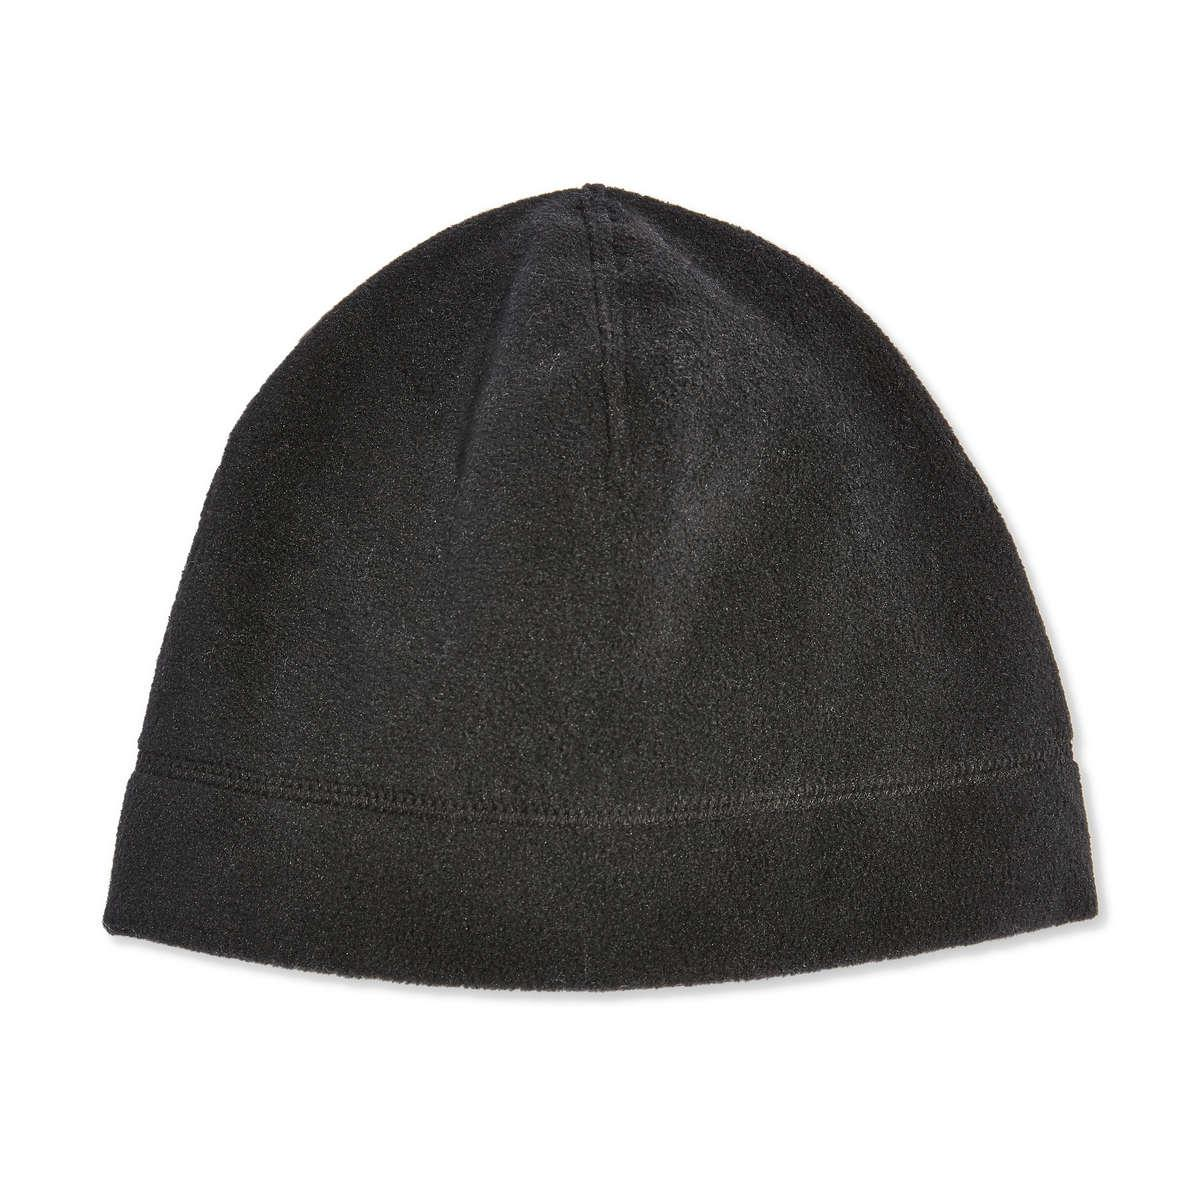 169442ce57a Joe Fresh Men s Fleece Hat in Black for Men - Lyst